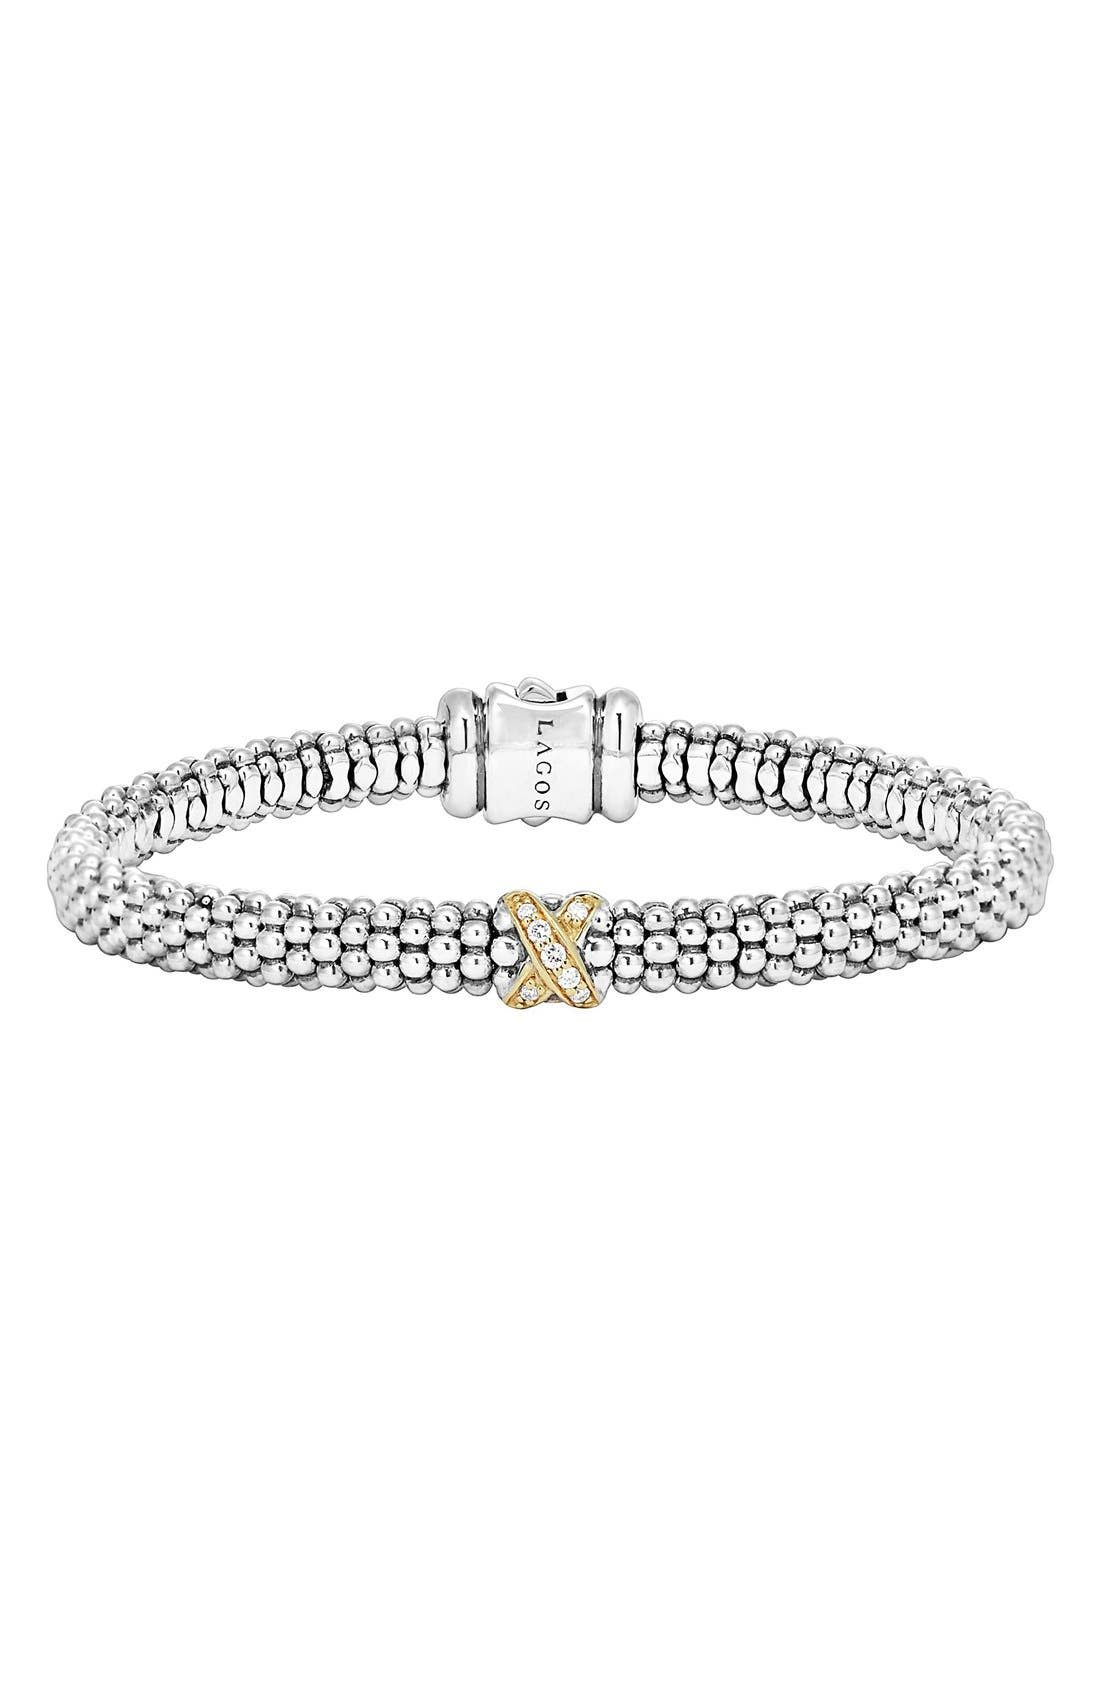 Lagos 18k Gold And Sterling Silver X Collection Rope Bracelet With Diamonds In Sterling Silver/ Gold